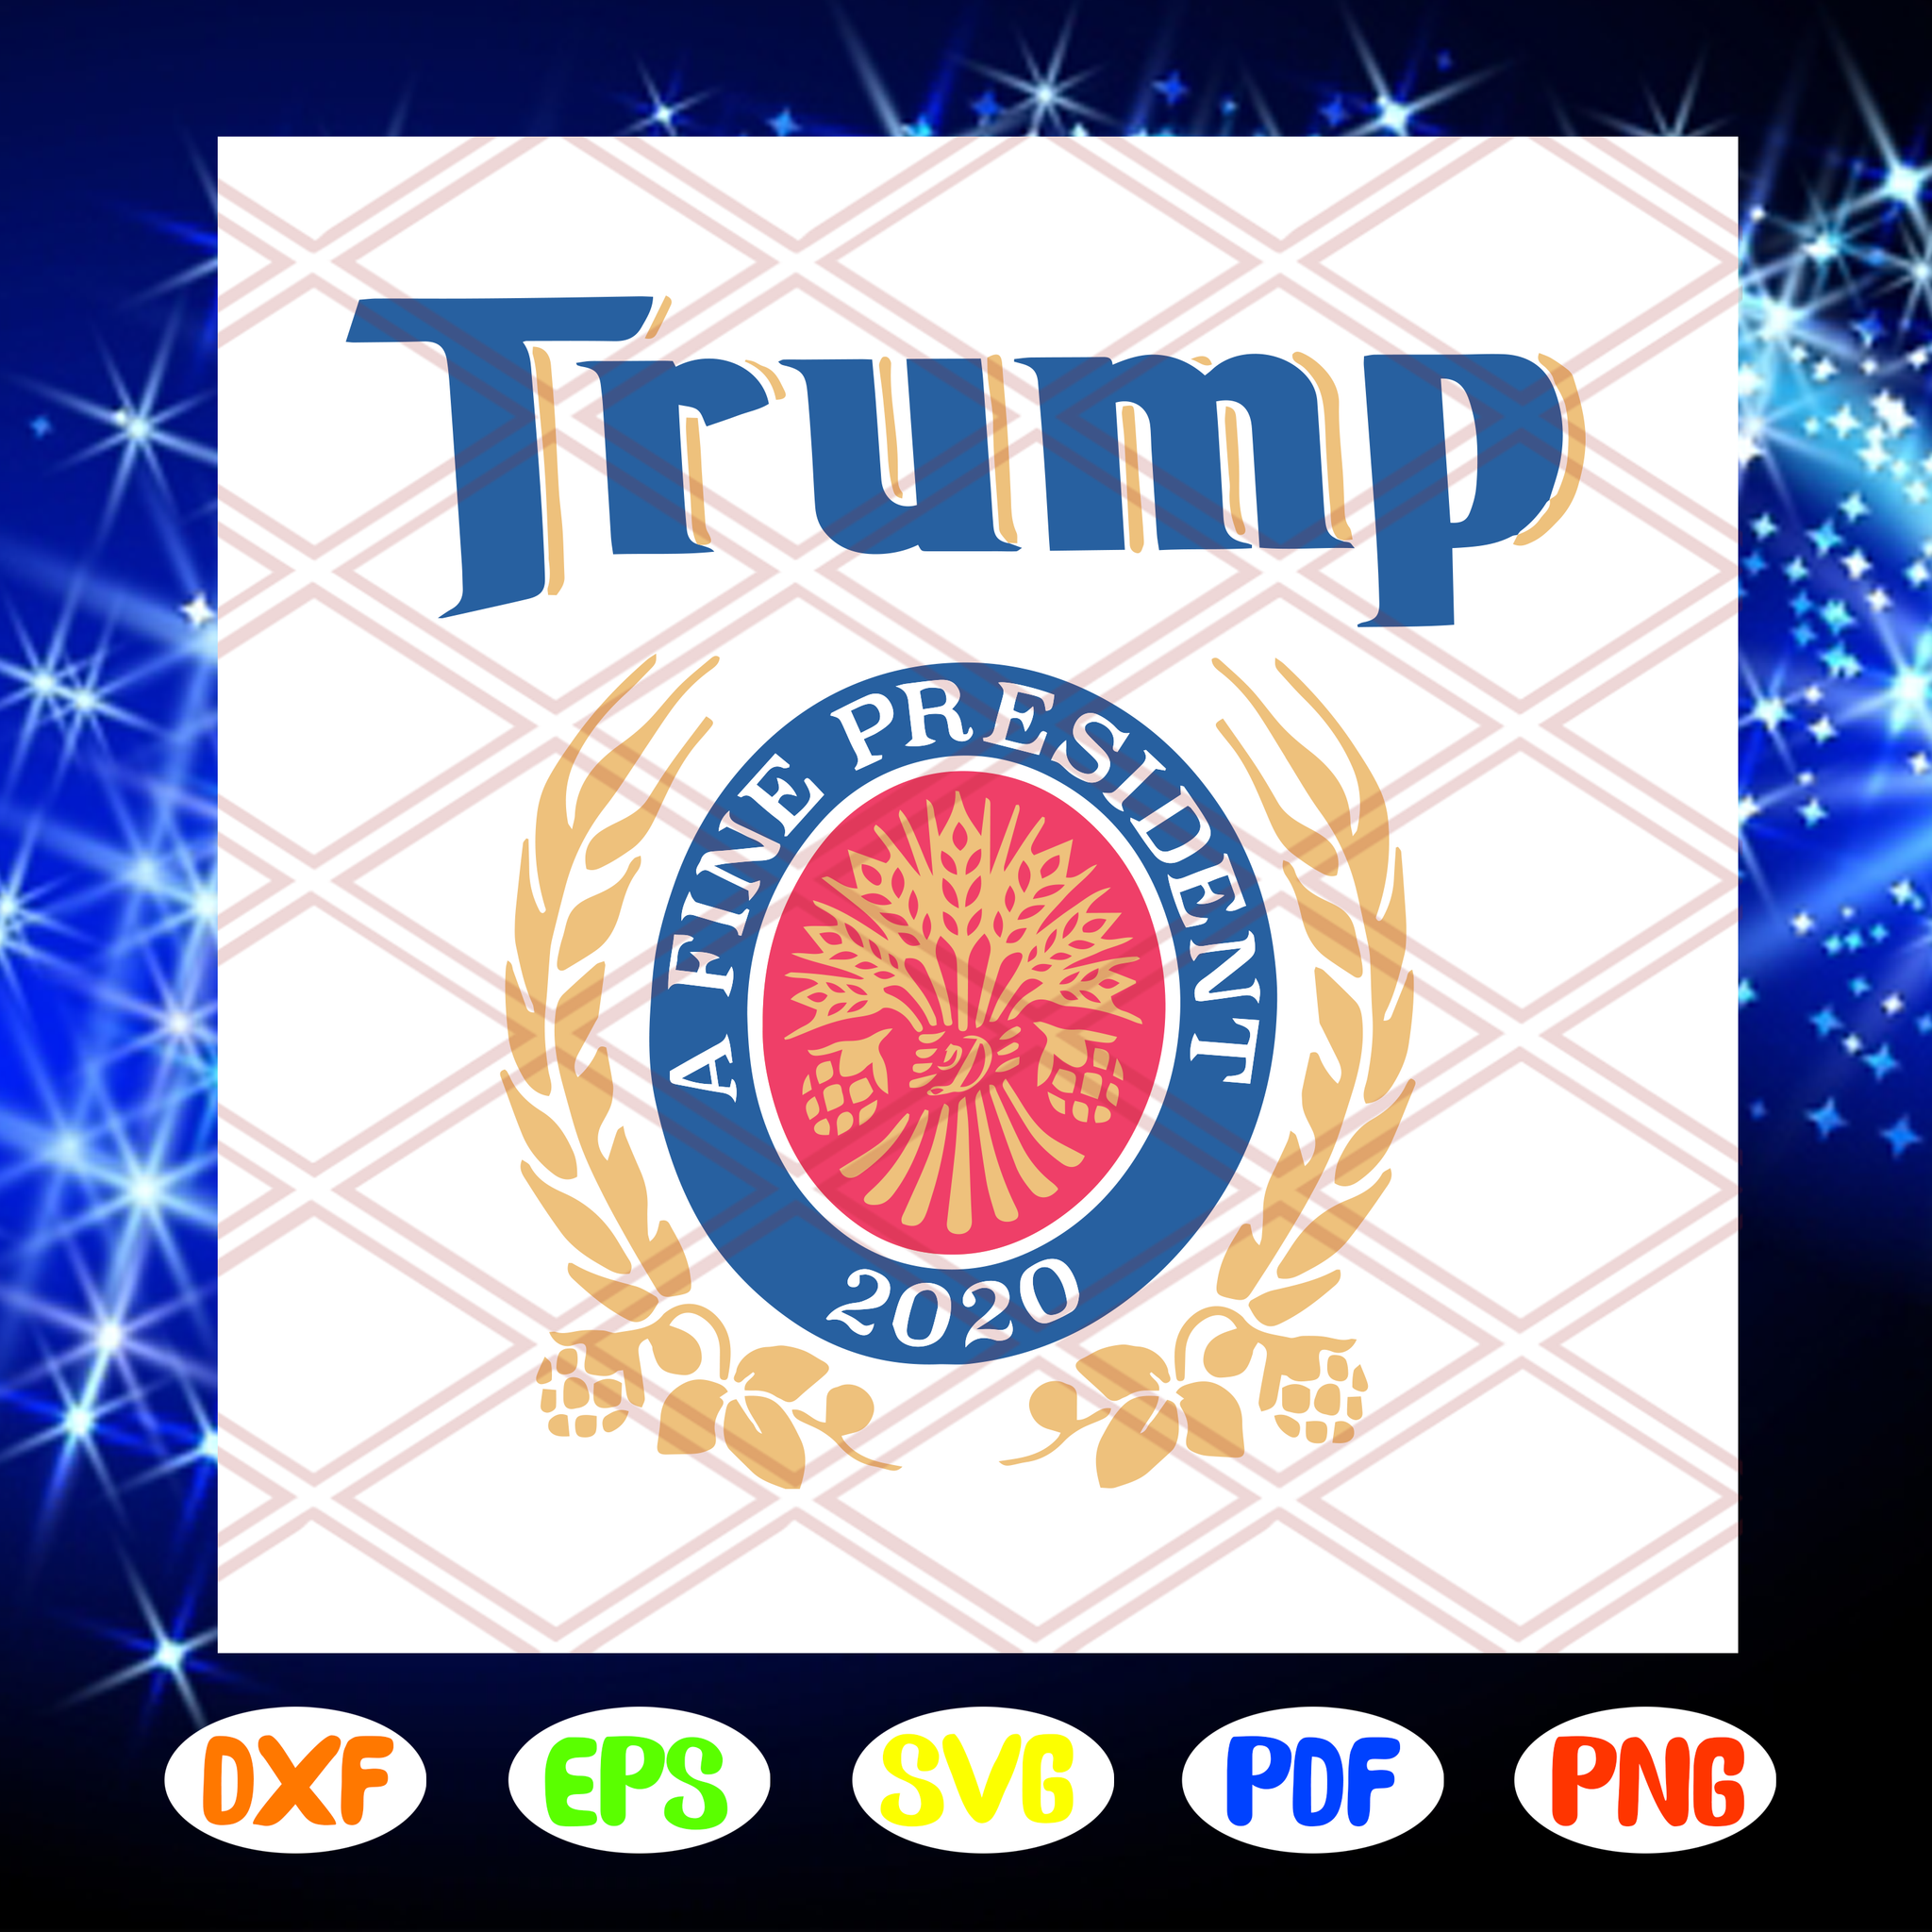 Trump a fine president 2020 svg, Donald Trump Svg, Trump 2020 Impeach This Liberals, Trump Gag Gift, American President svg, Gift for Republican, Trump svg, For Silhouette, Files For Cricut, SVG, DXF, EPS, PNG Instant Download